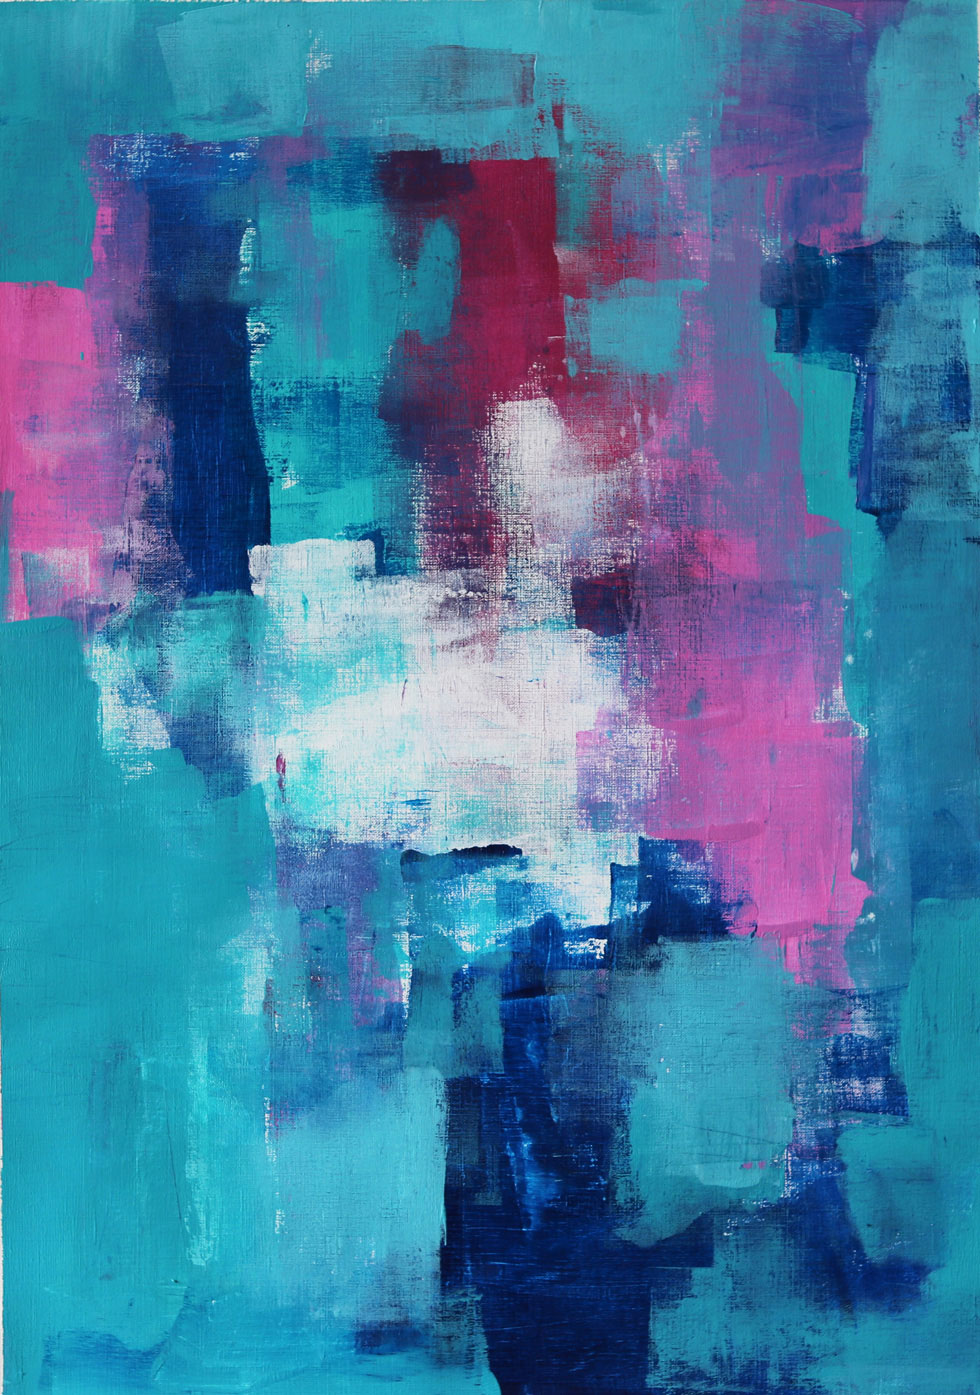 Create Abstract Art Using A Blue, Green and Pink Colour Combination // Moments by Charlie // Australian Abstract Artist, Freelance Photographer and Blogger Charlie Albright // Art + Fashion + Lifestyle + Photography // Made in Adelaide, Australia